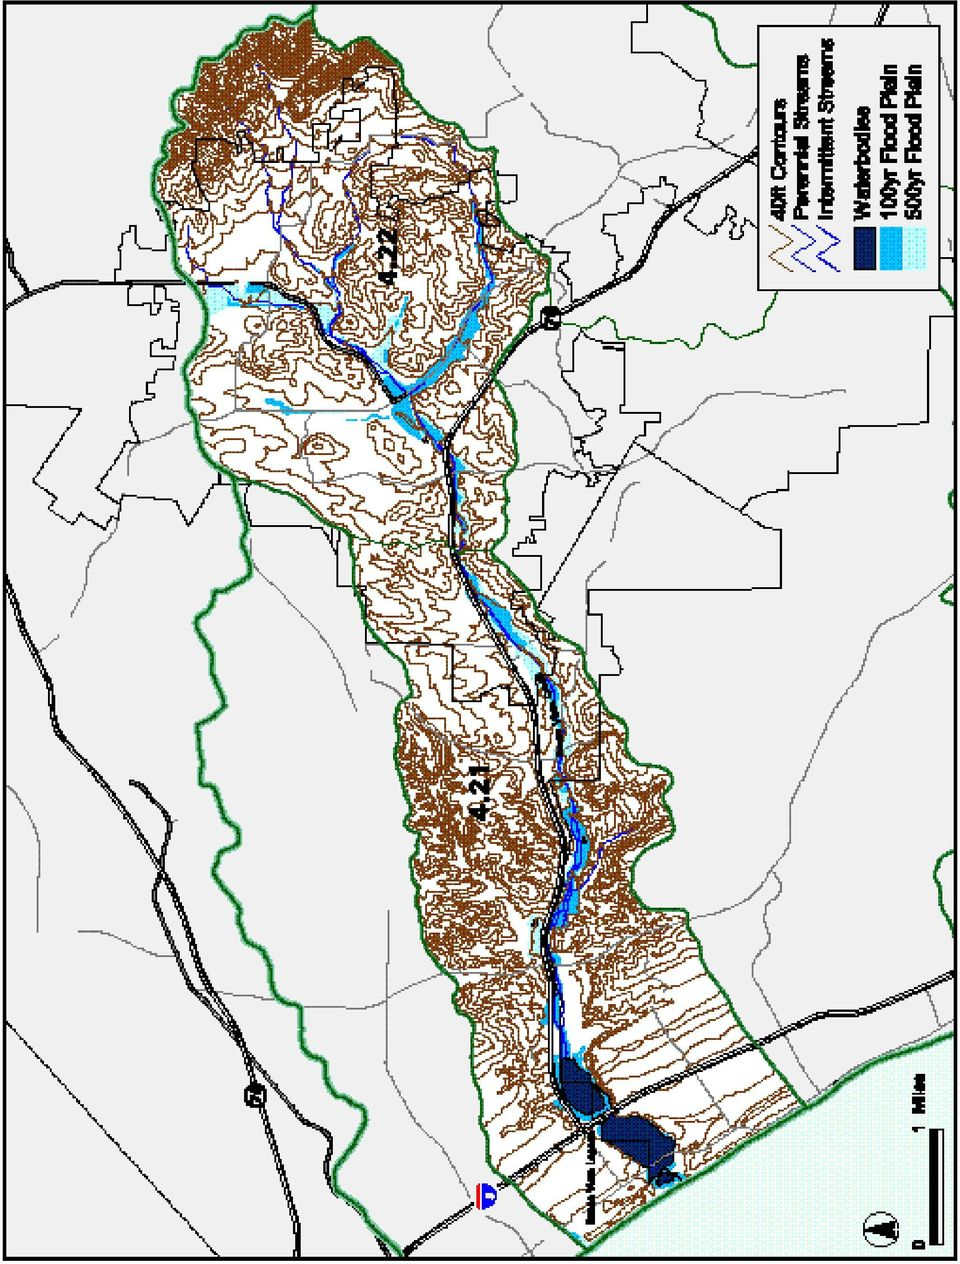 2-3: Buena Vista Creek